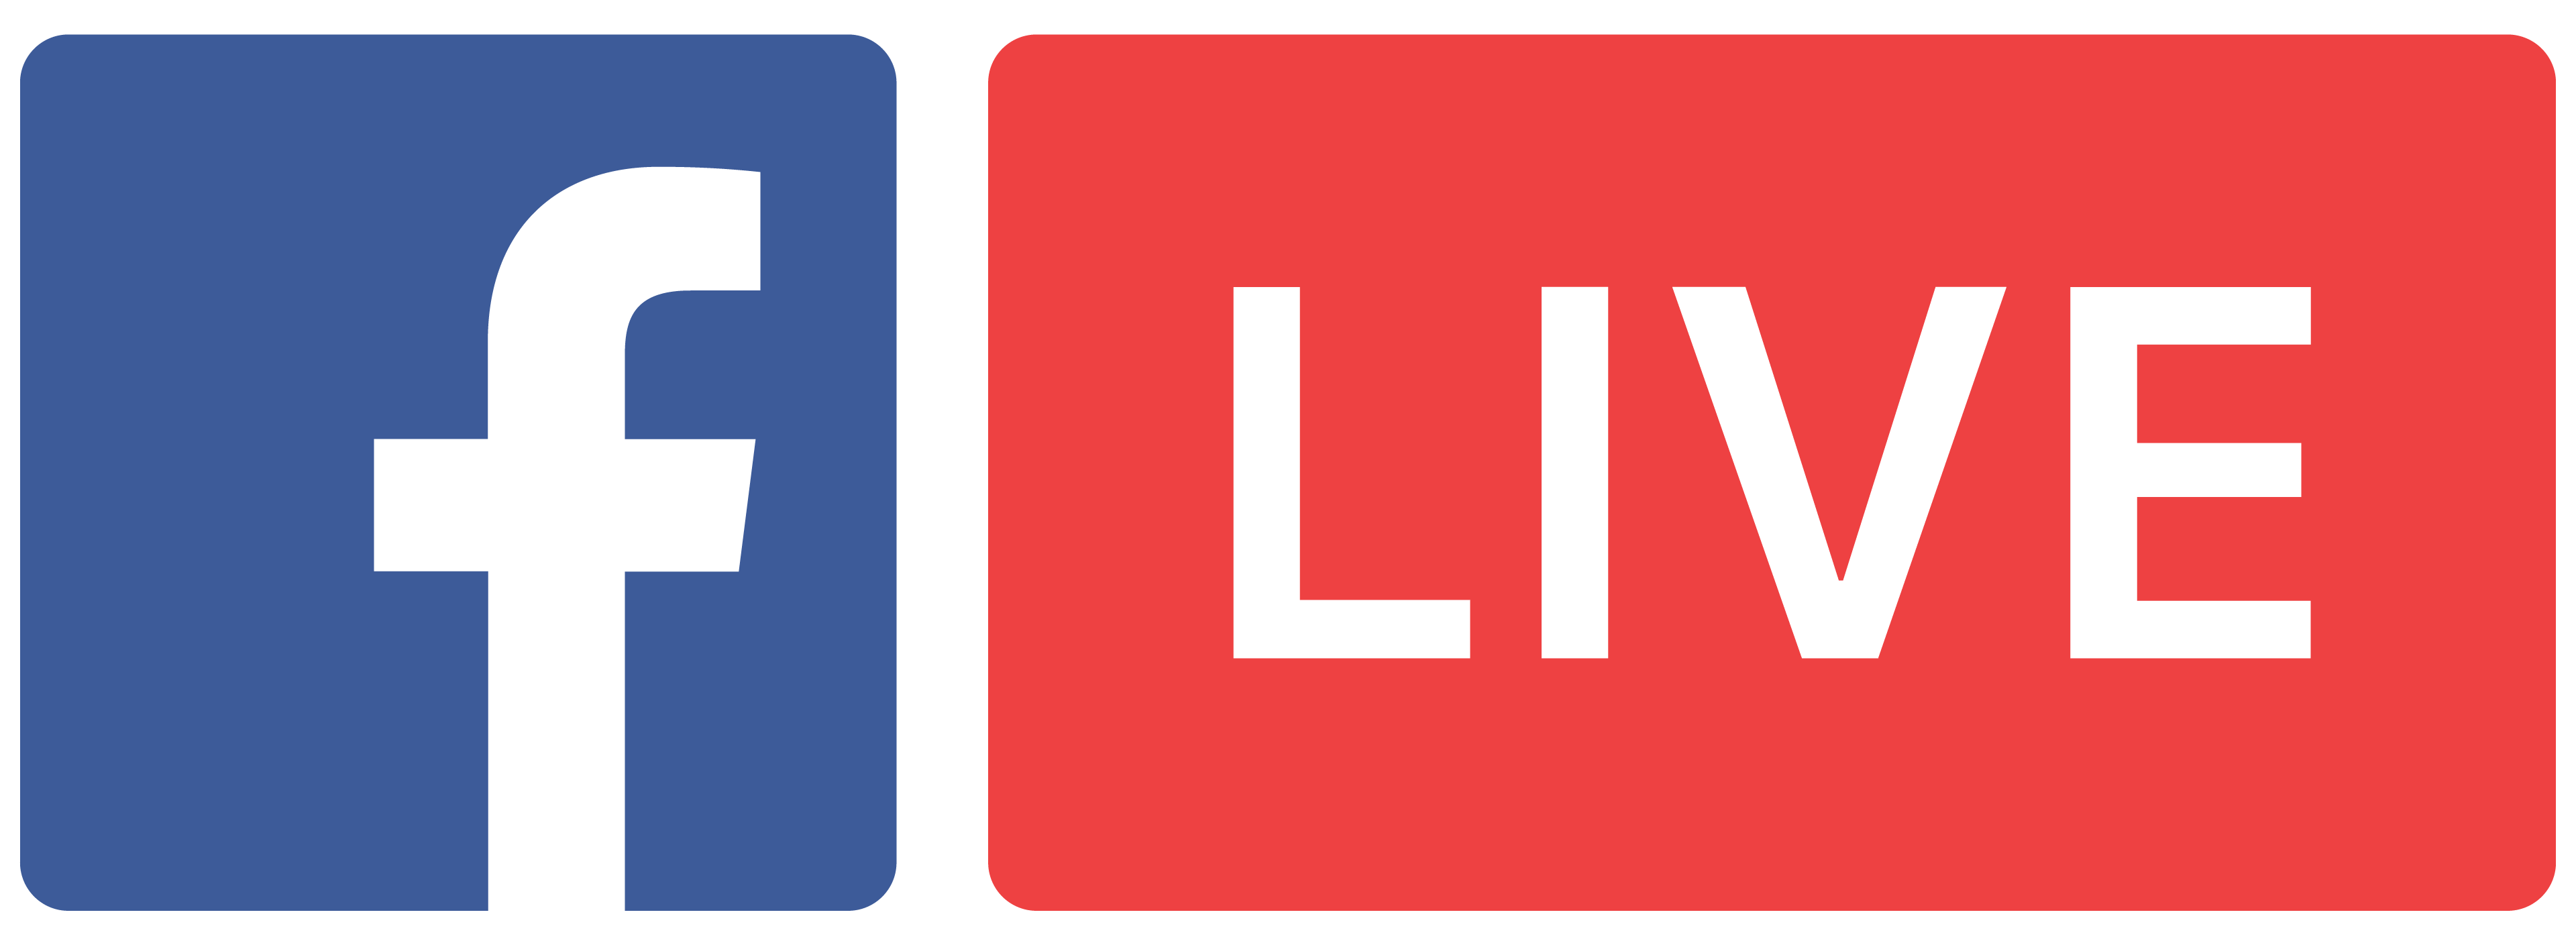 No te pierdas mis vídeos en directo